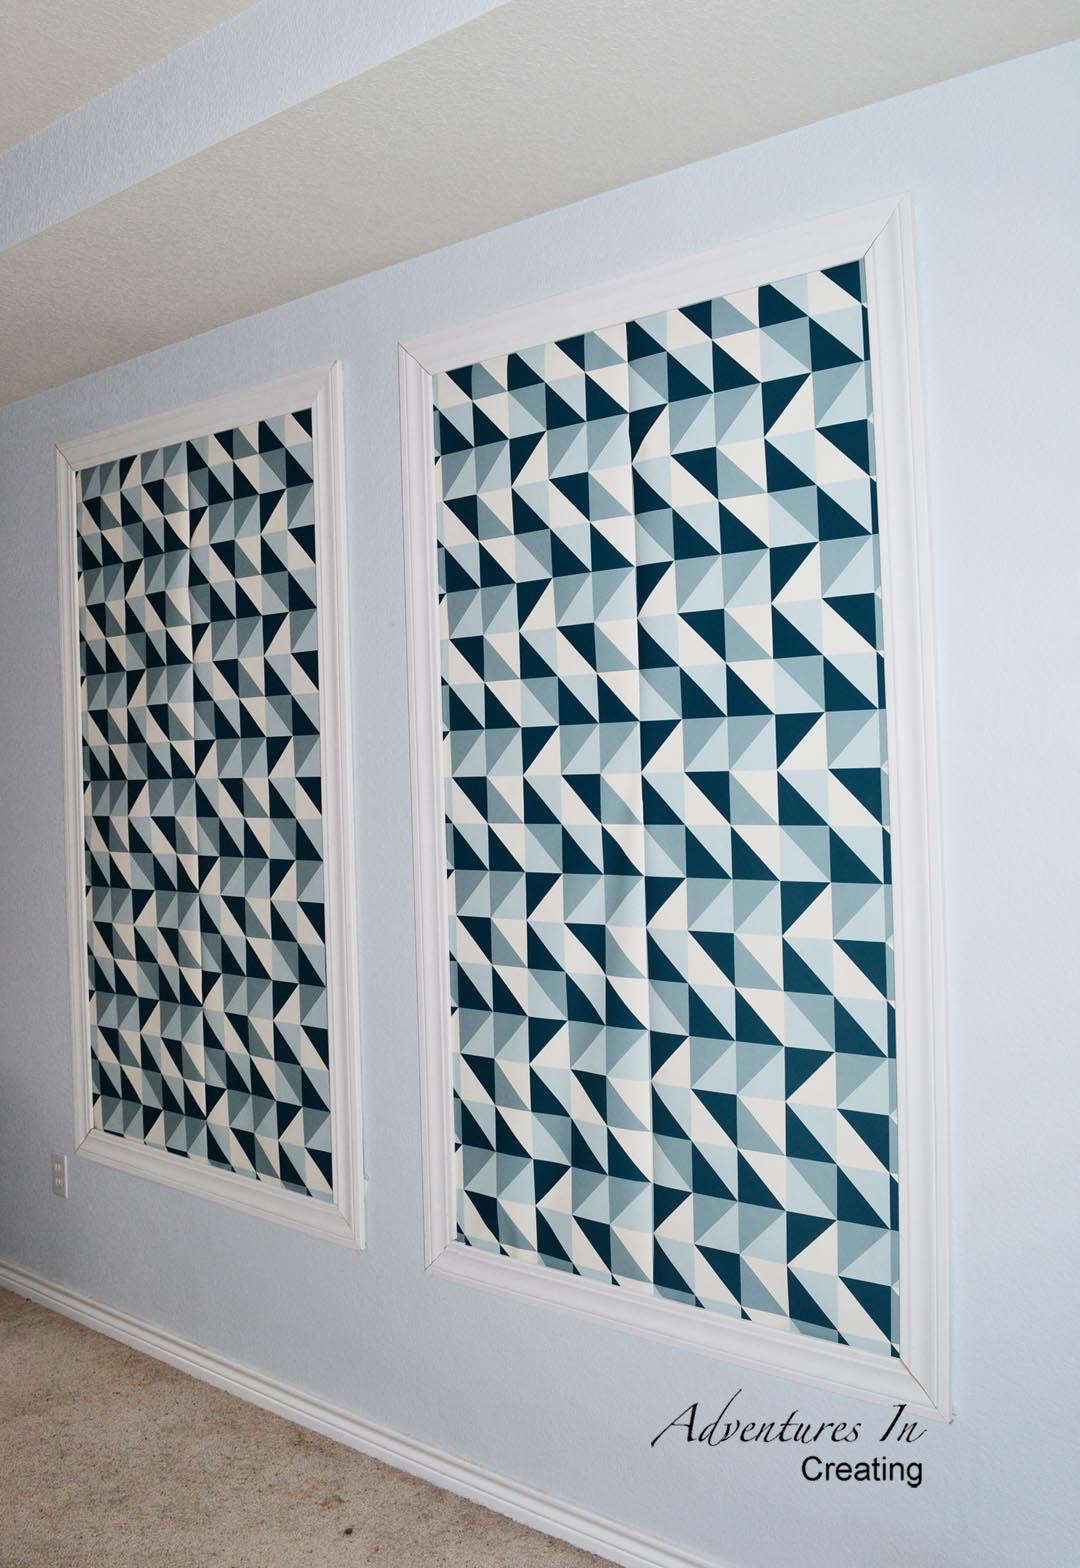 Frame some wallpaper for very cool and innovative wall art